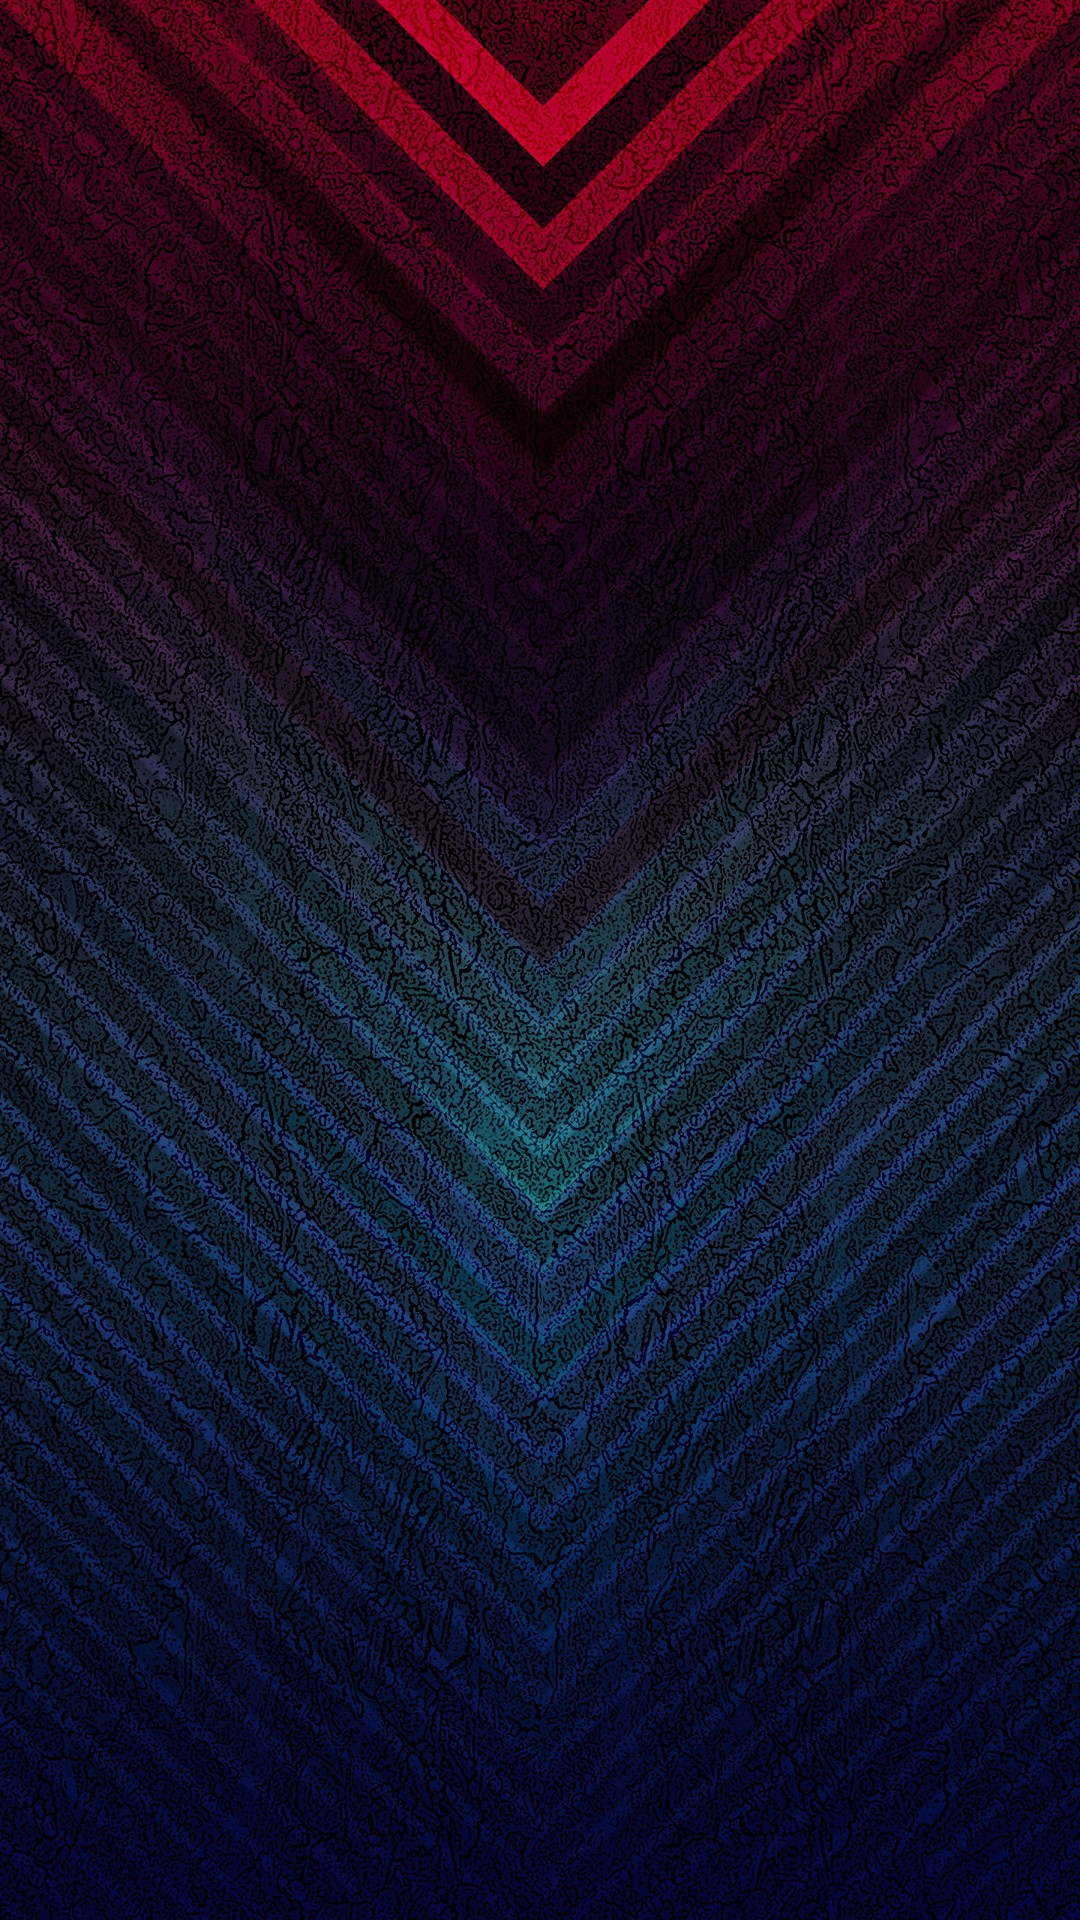 1080x1920 wallpapers hd